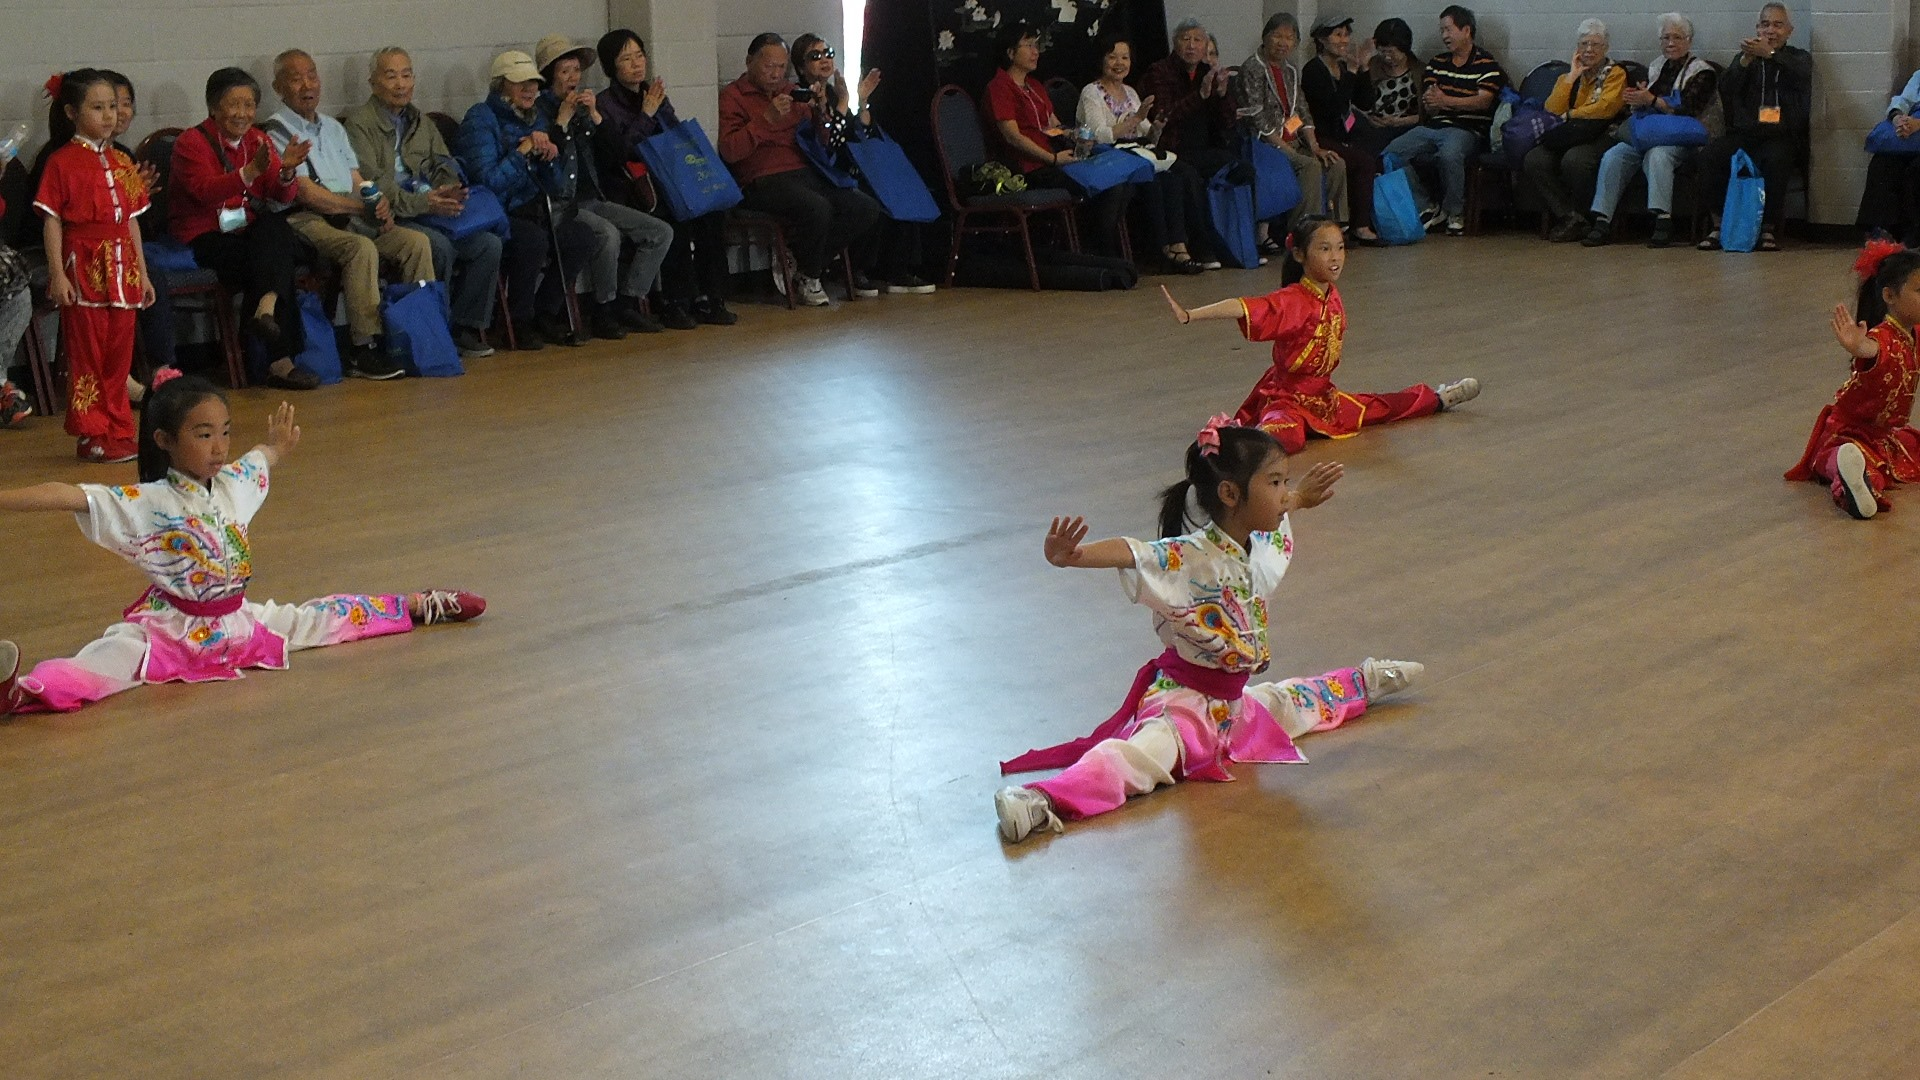 wayland-li-wushu-toronto-canada-demo-chinese-cultural-centre-health-awareness-day-2017-7.jpg